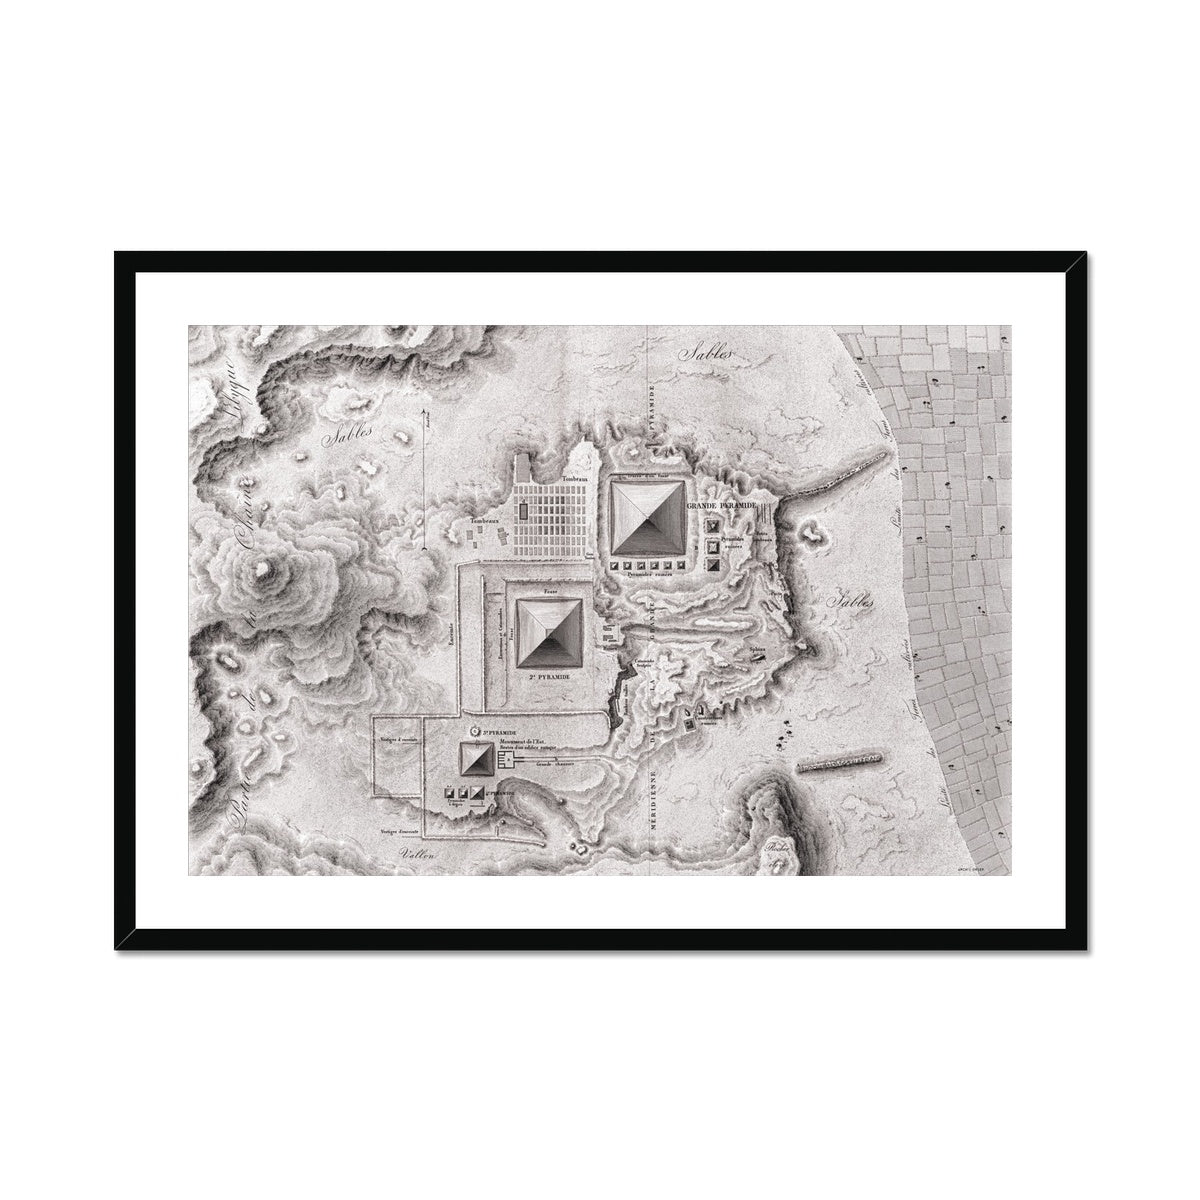 Topographic Map of the Pyramids - Memphis Egypt -  Framed & Mounted Print